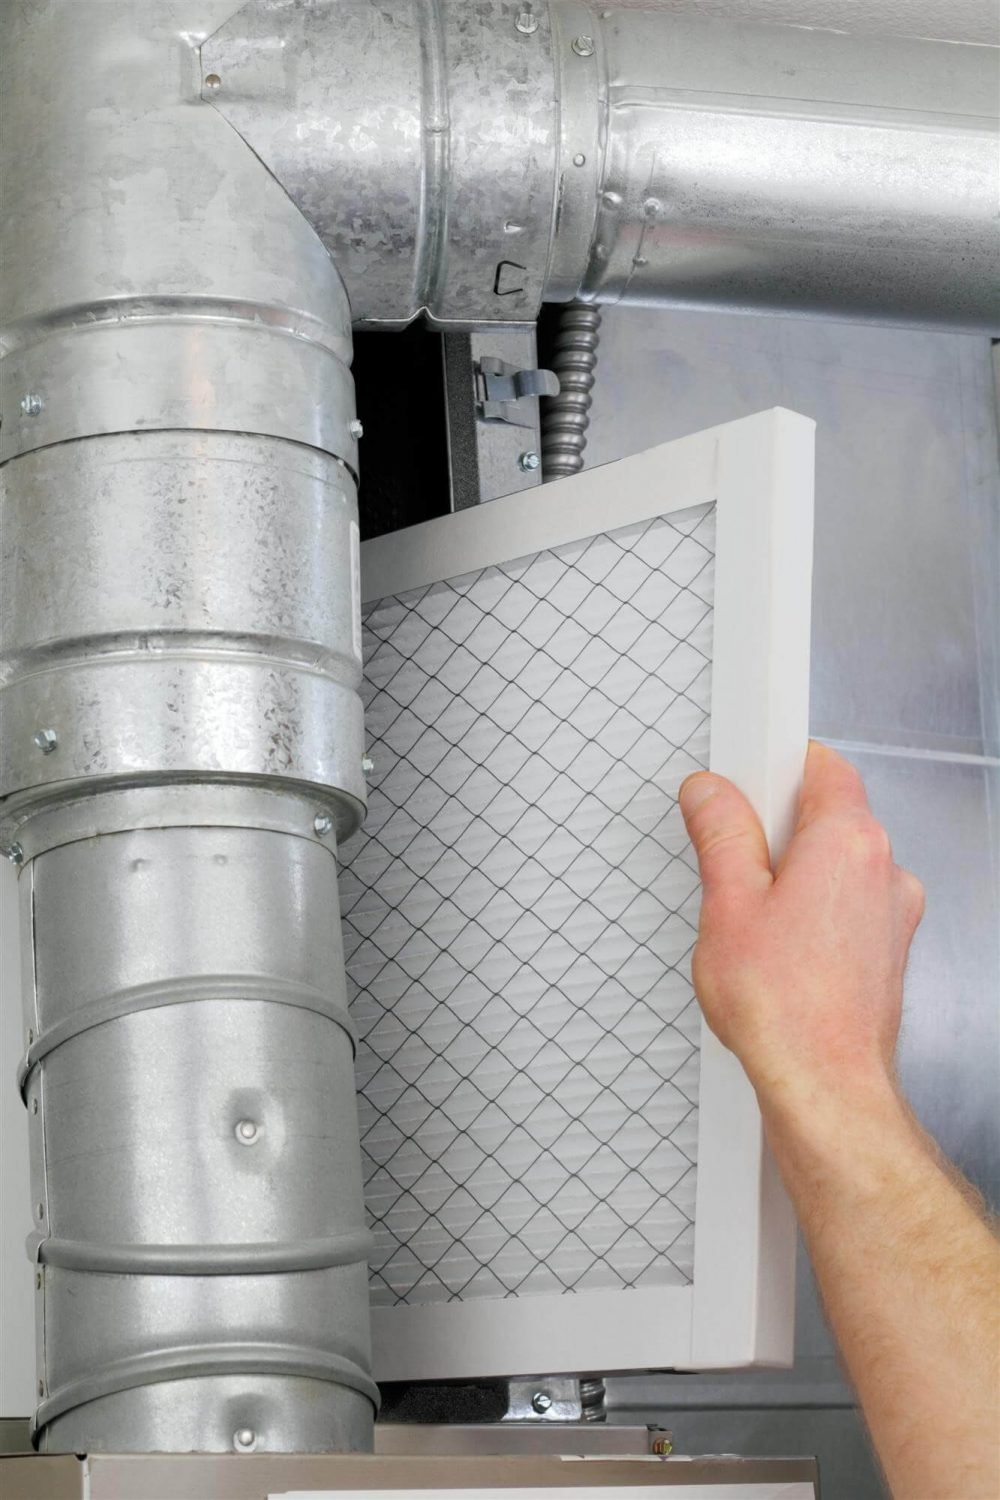 Why You Should Hire a Professional to Repair Your Furnace